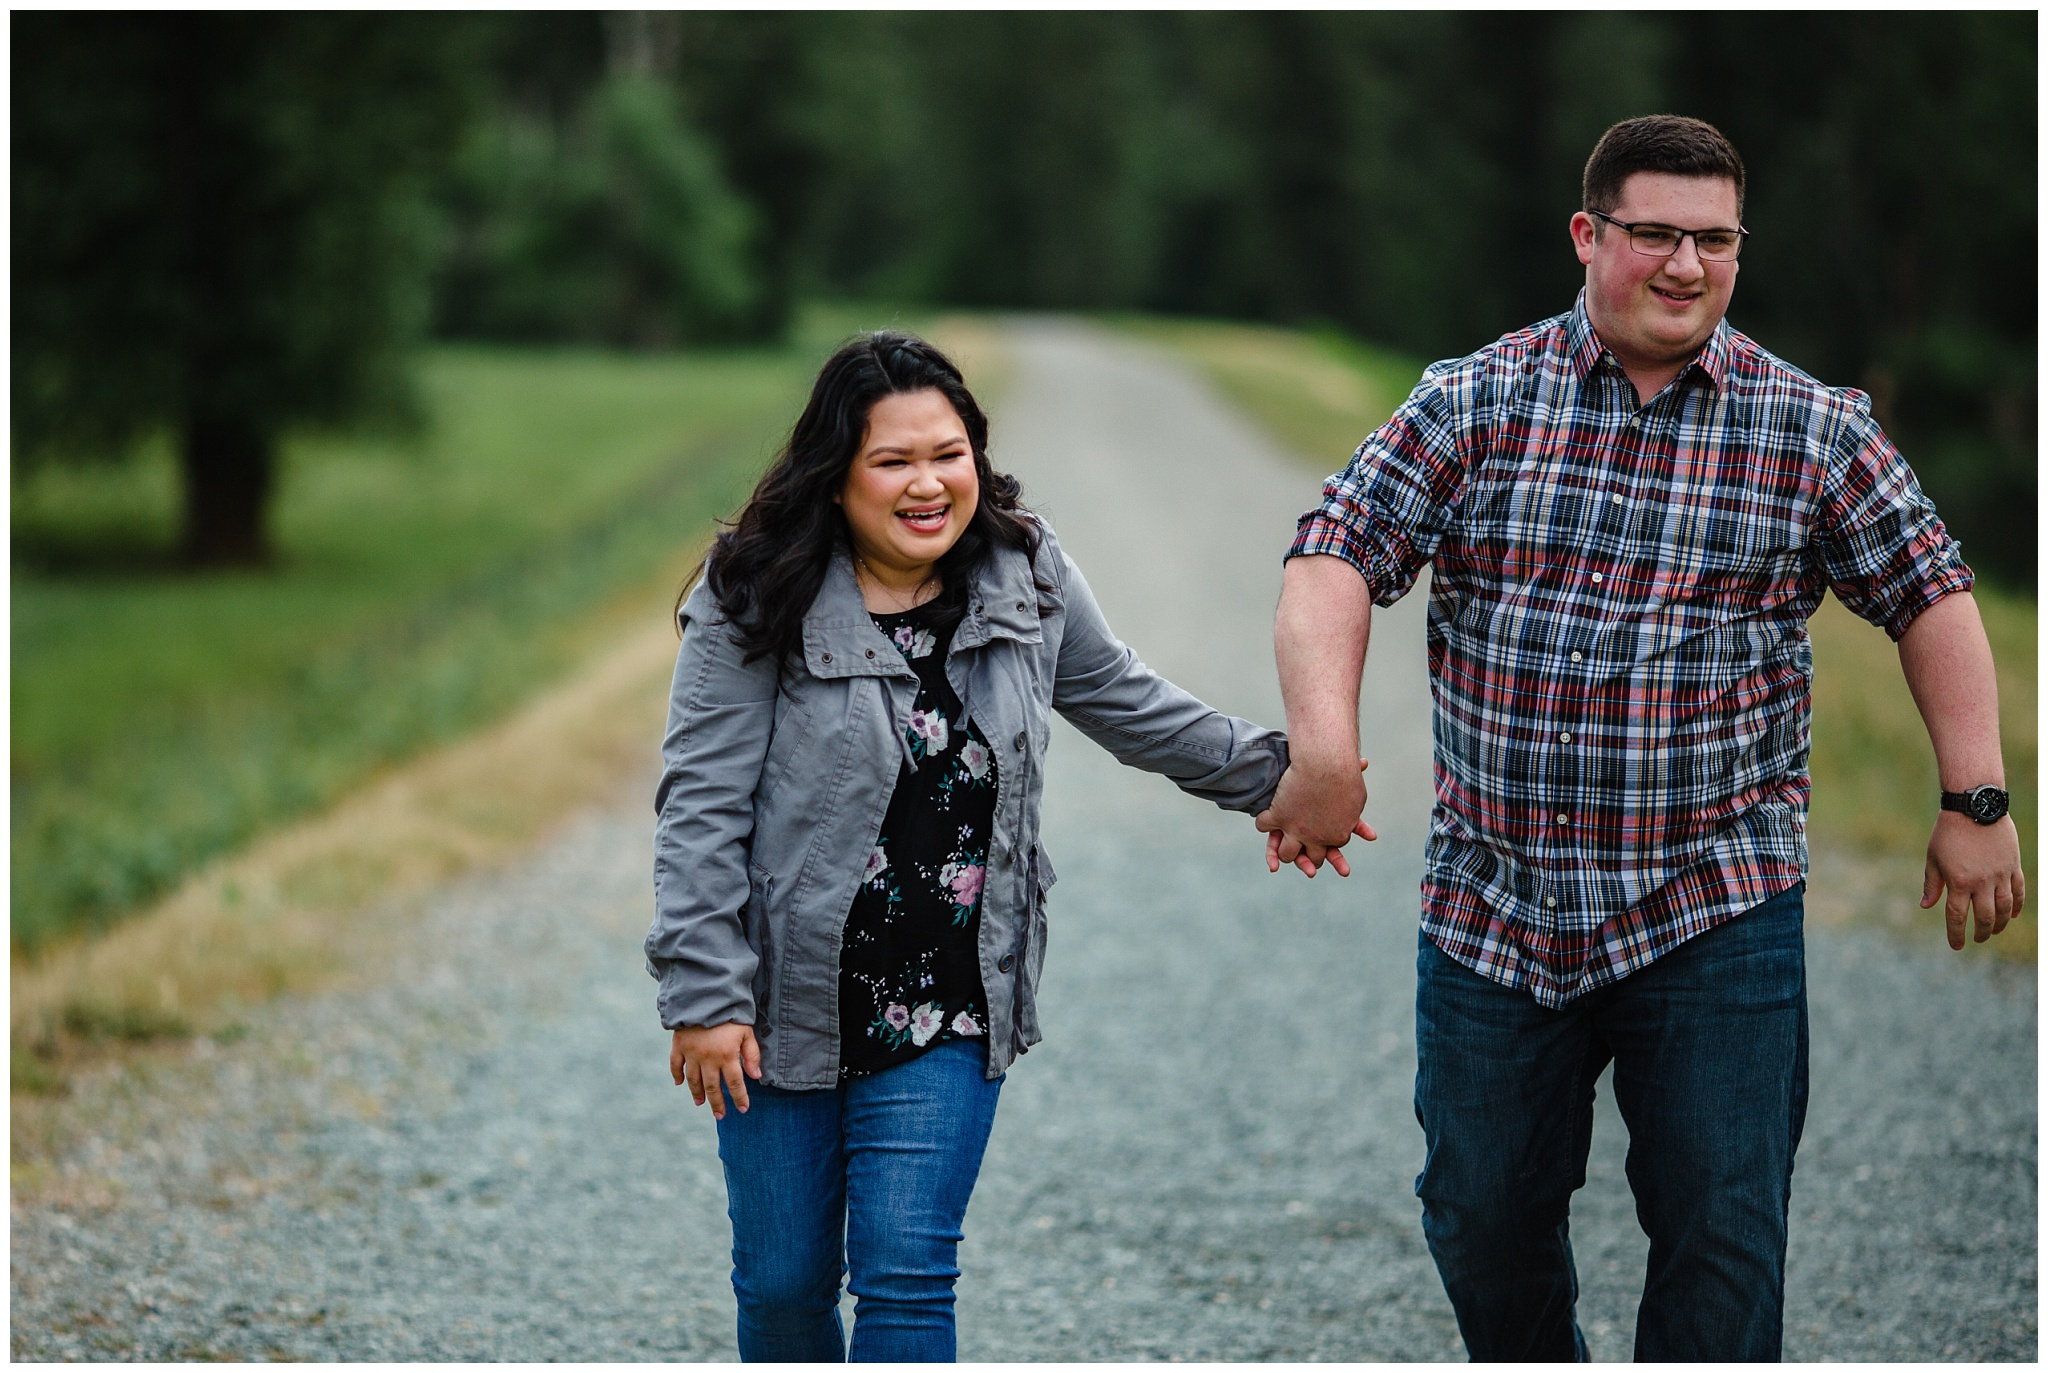 McKay Creek Park Abbotsford Spring Engagement Photos Happy Forest Trees Green Candid Fun Couple Photos_0020.jpg